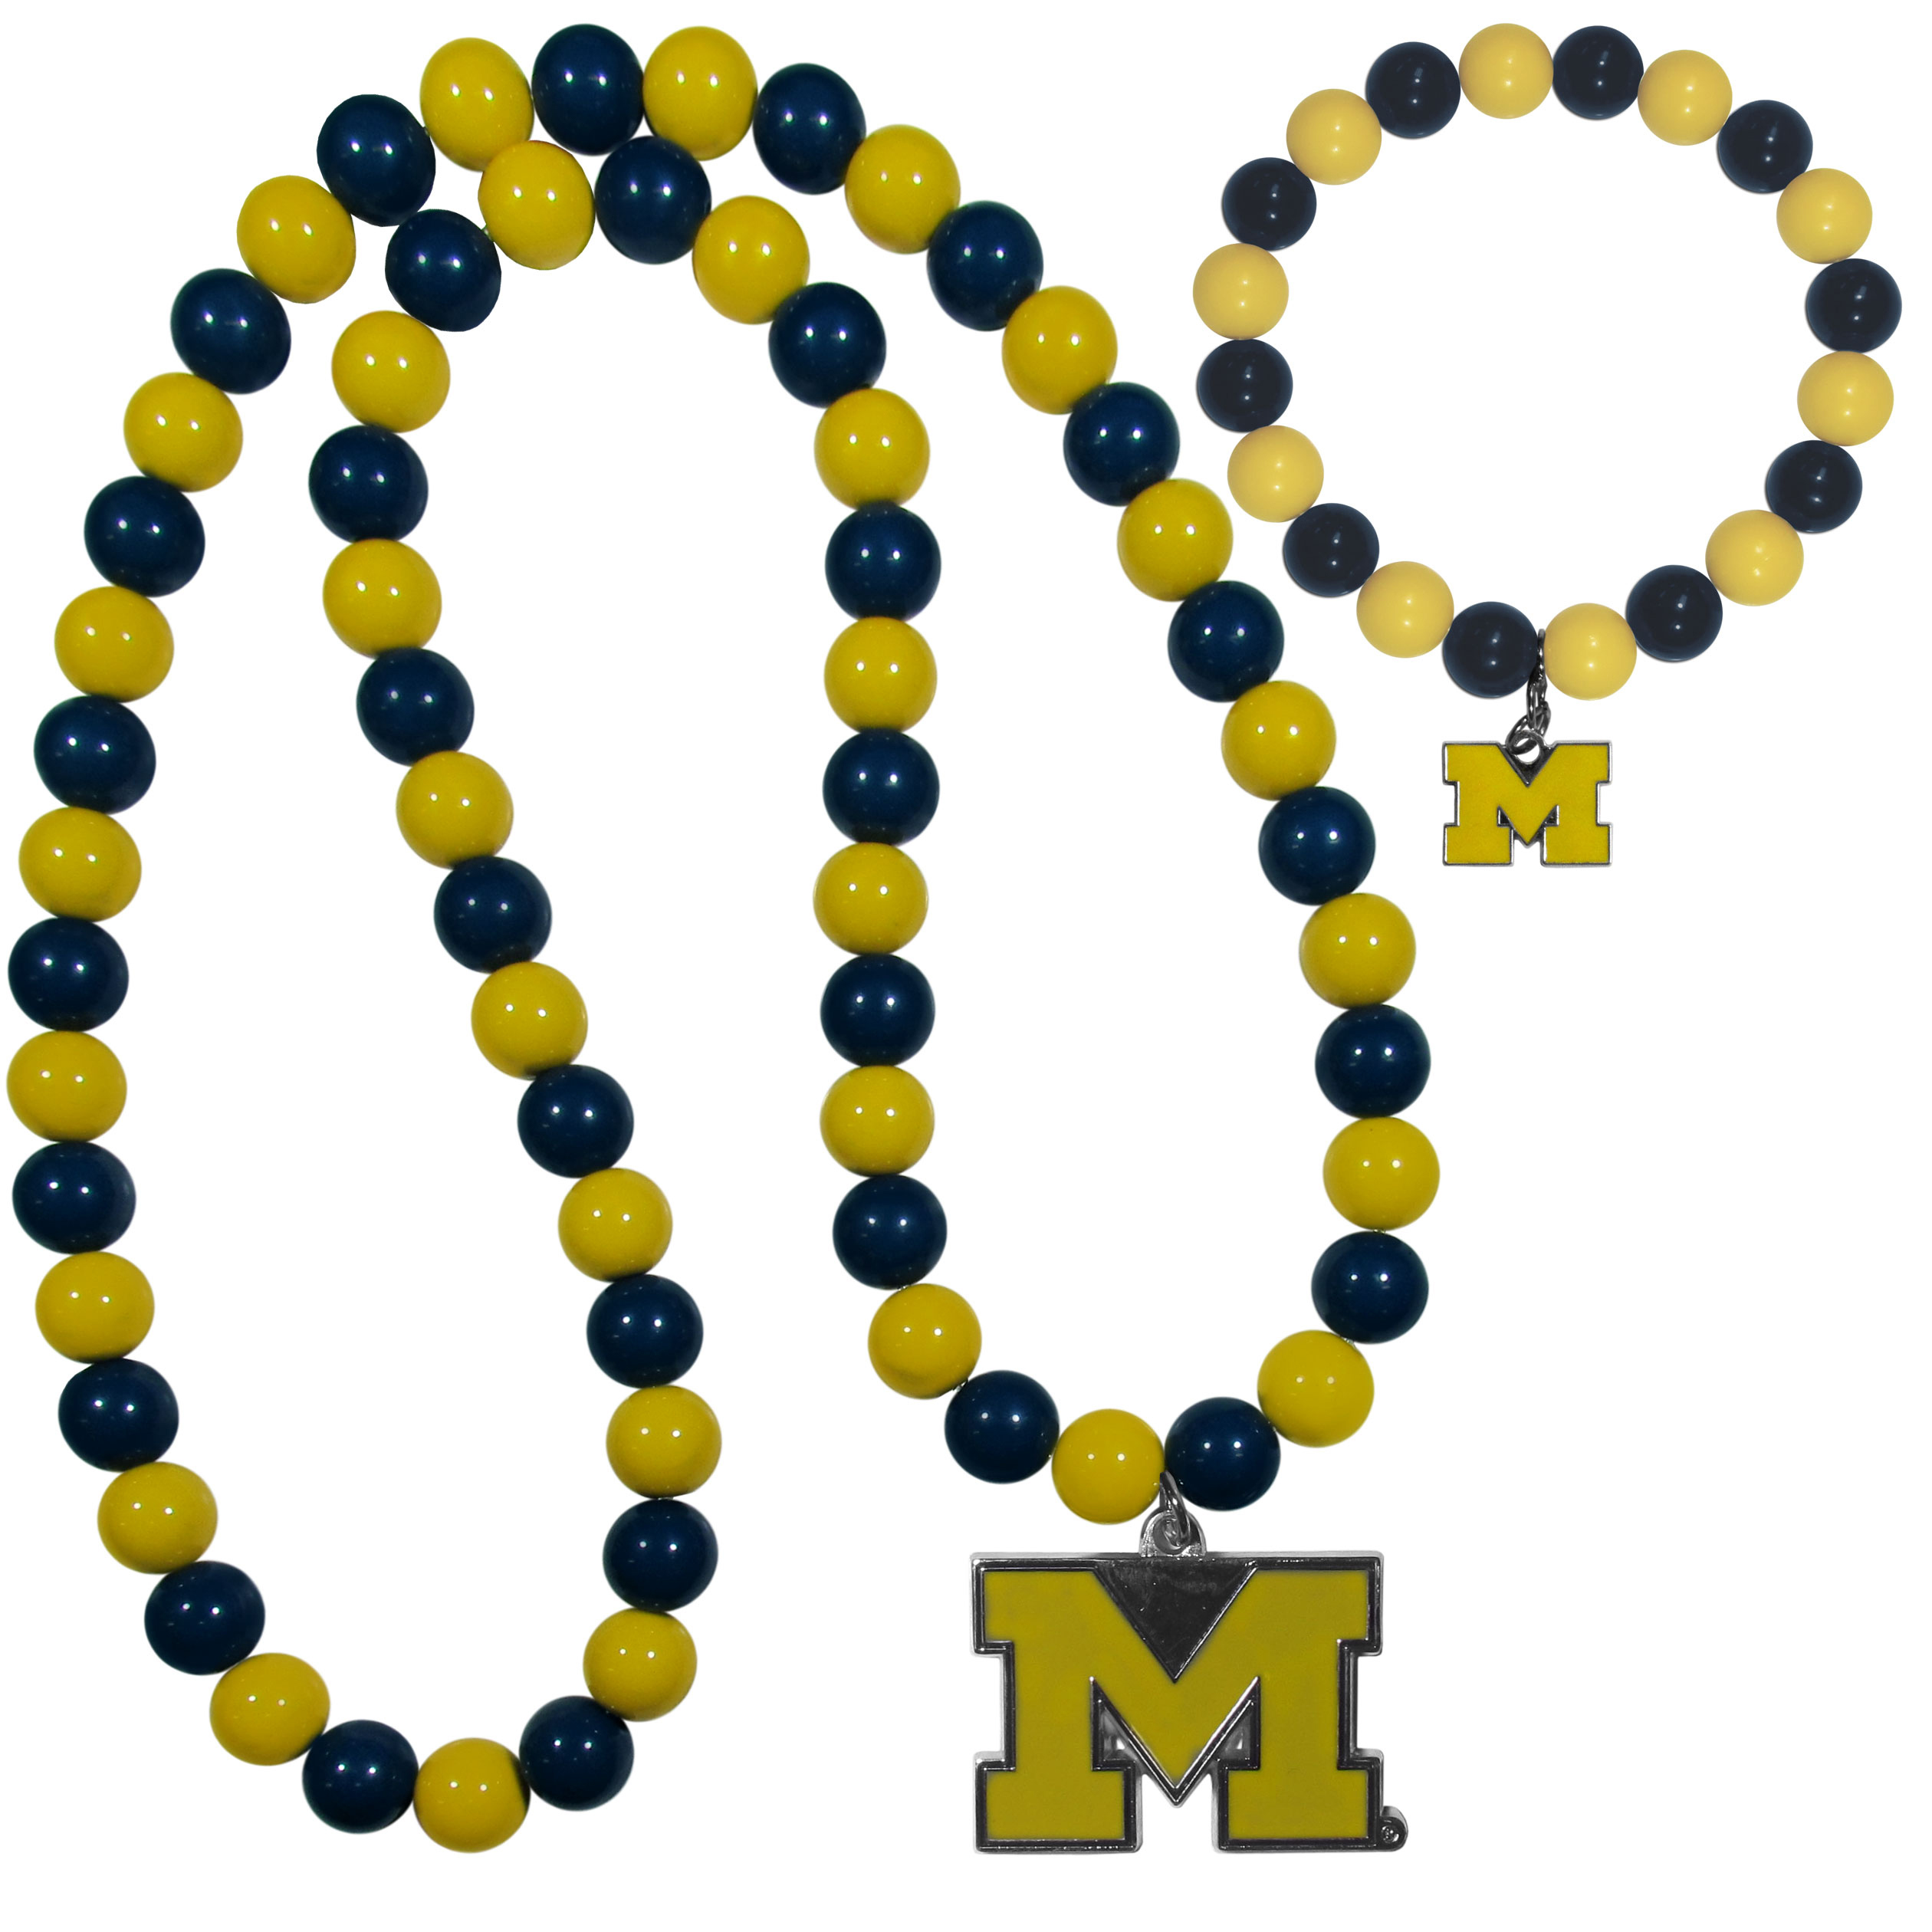 Michigan Wolverines Fan Bead Necklace and Bracelet Set - These fun and colorful Michigan Wolverines fan bead jewelry pieces are an eyecatching way to show off your team spirit. The striking necklace is a 24 inch string of alternating team colored beads with a large team pendant. The mathcing bracelet has alternating team colored beads on a stretch cord and features a matching team charm.